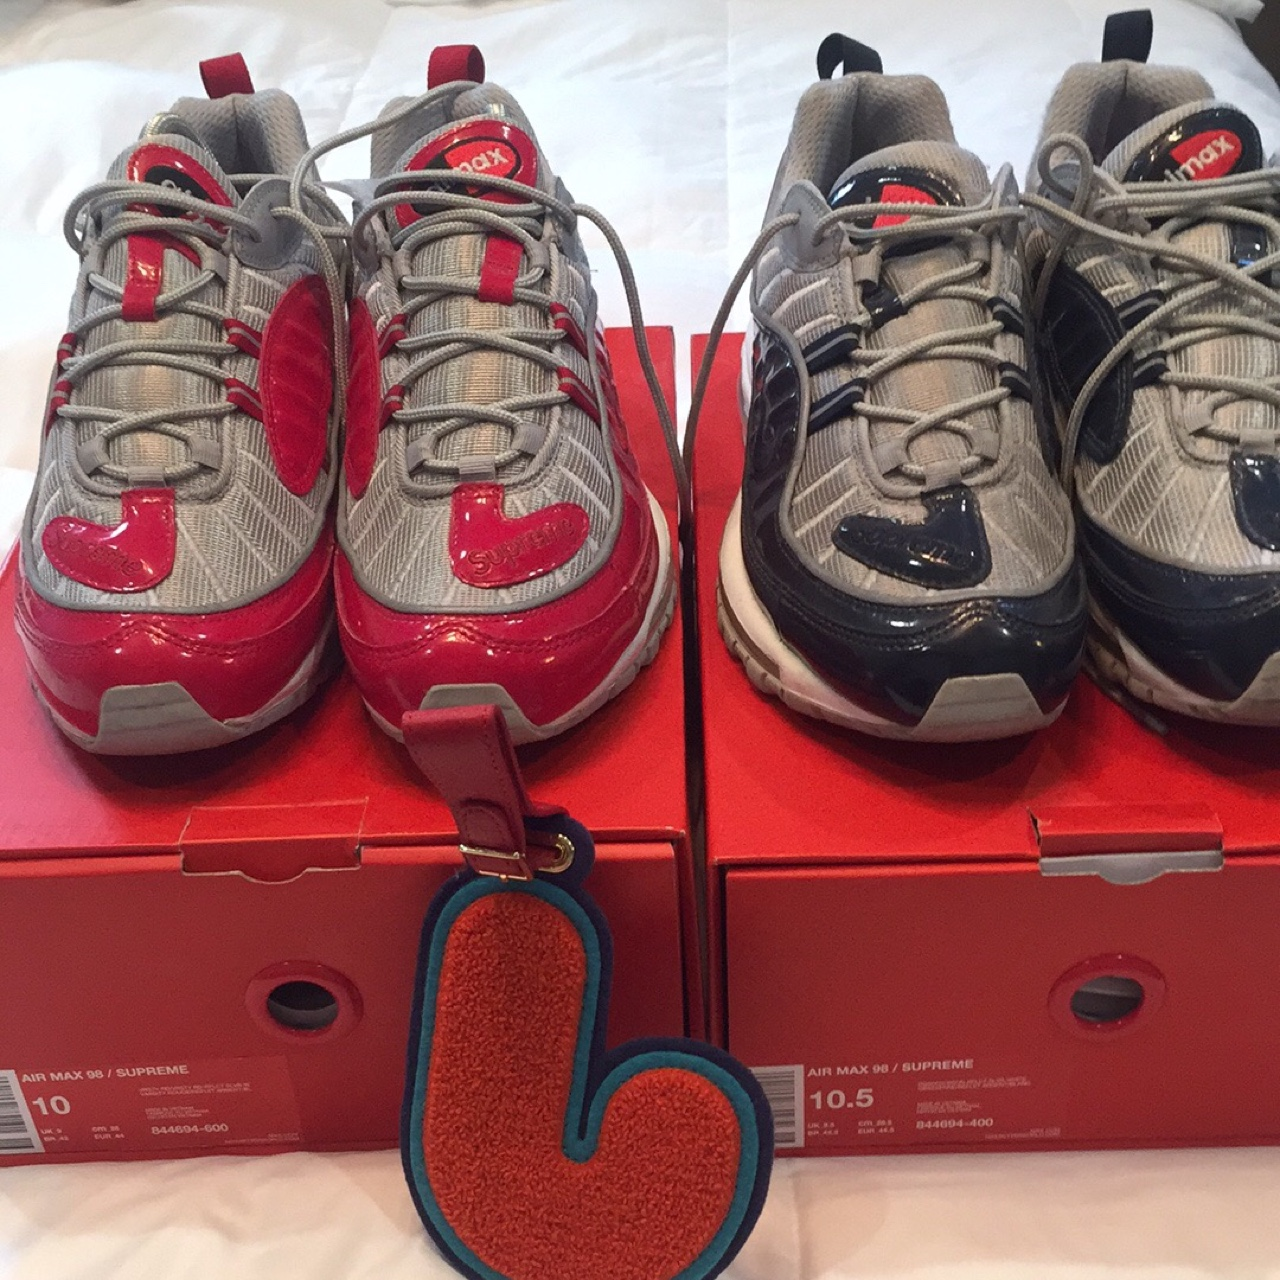 separation shoes 0a3ab 6ee9a Supreme air max 98s red is size 10 US And in 9/10... - Depop